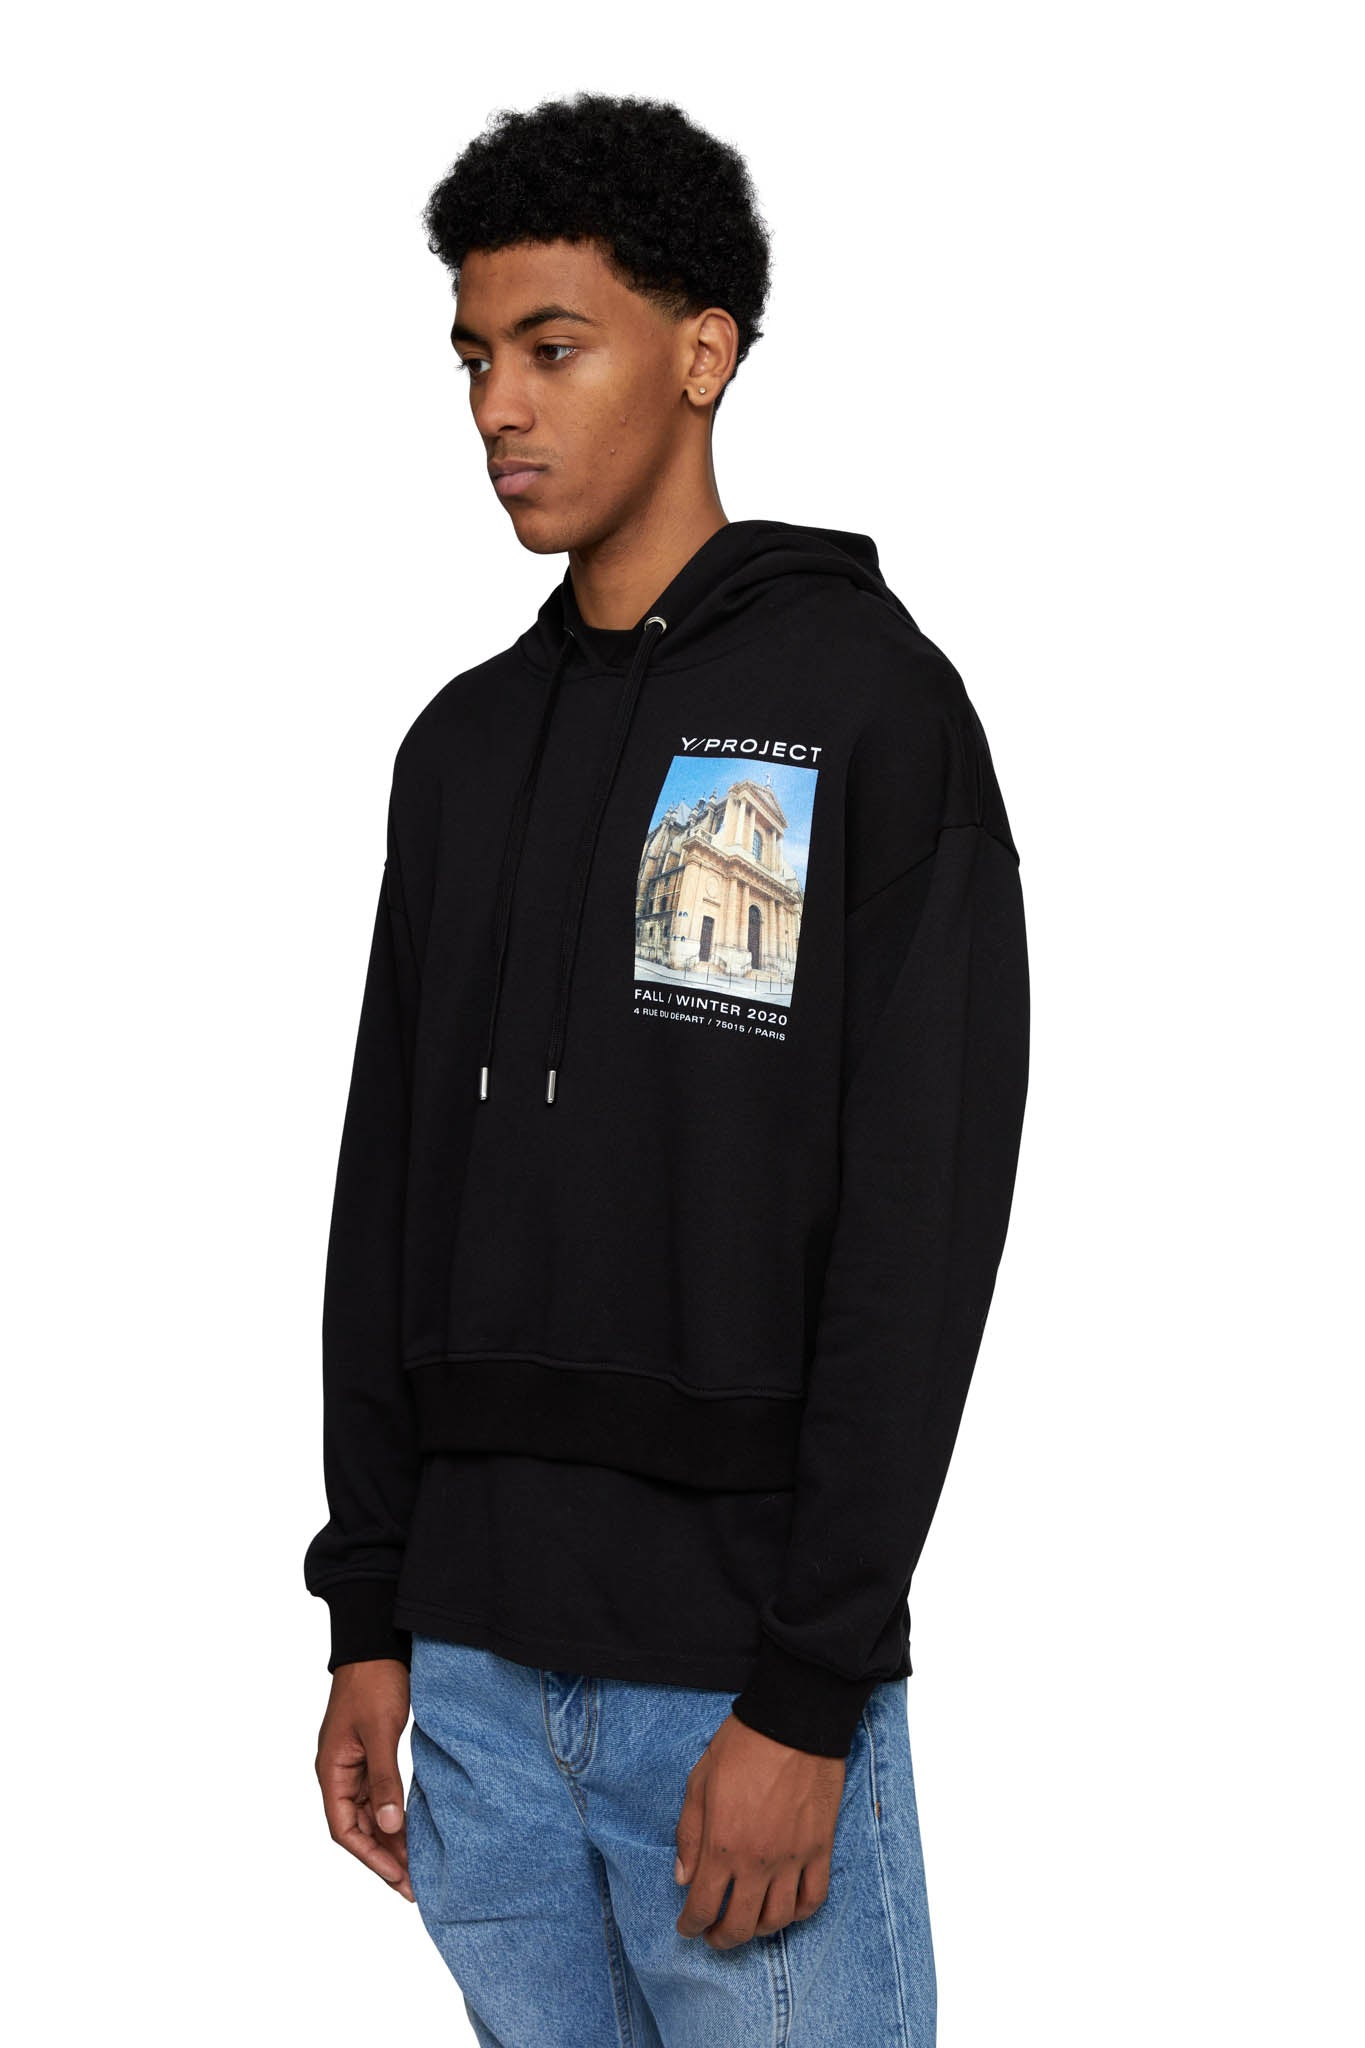 Y/PROJECT, HTOWN EXCLUSIVE PRINTED SHOW HOODIE, BLACK, WSWEAT24B-S19 J11, AW20, COTTON, HOODIE, MENS